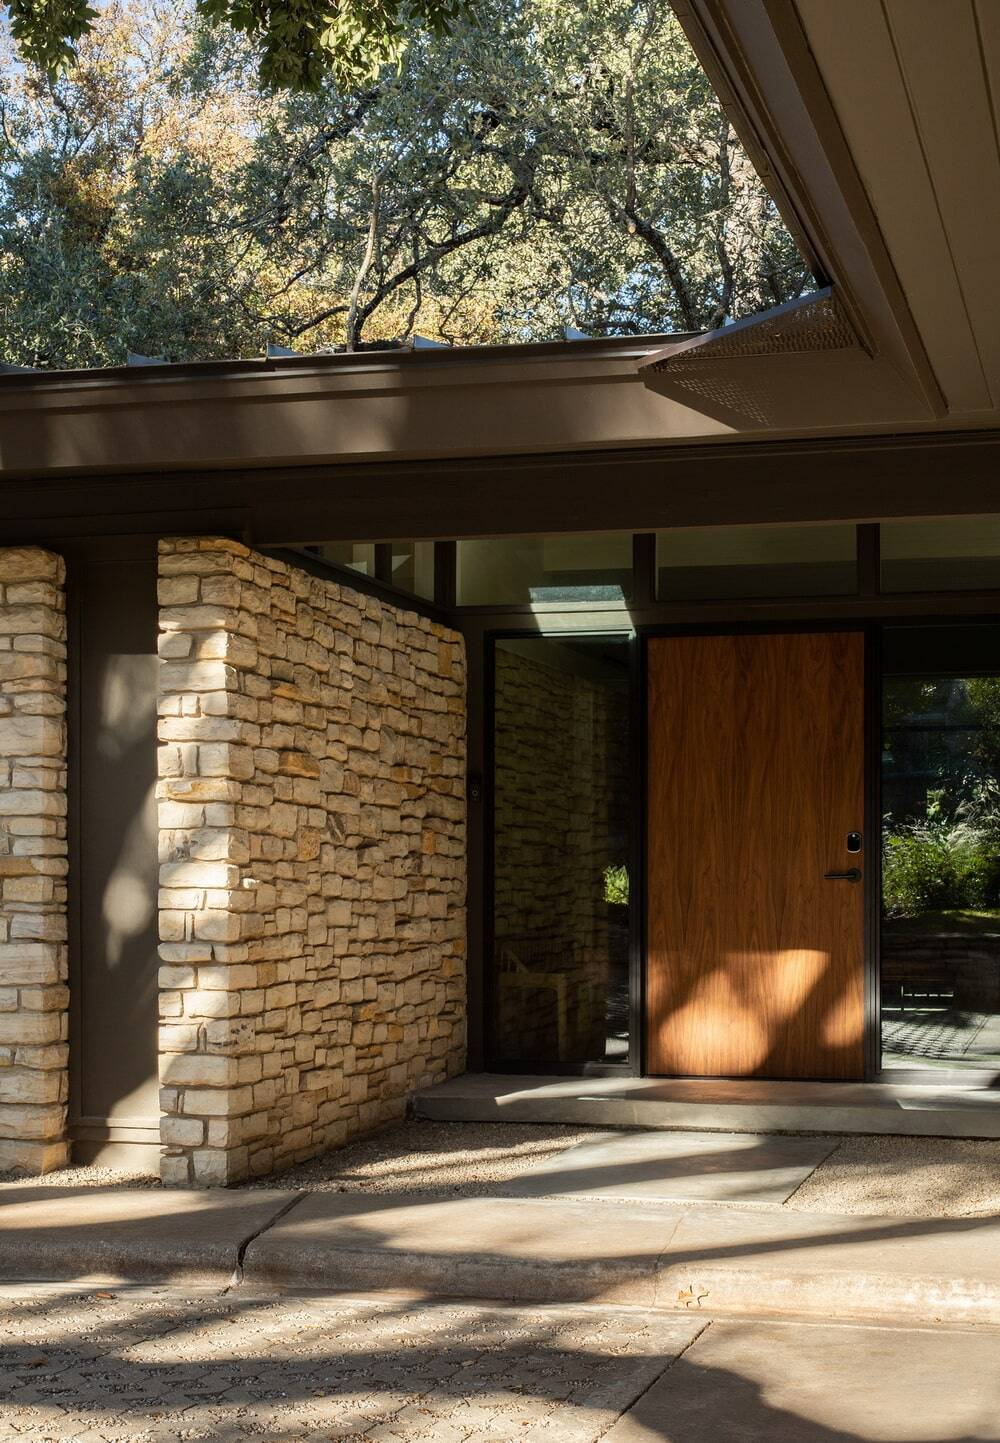 Four-Bedroom Ranch Home Remodel by Dick Clark + Associates